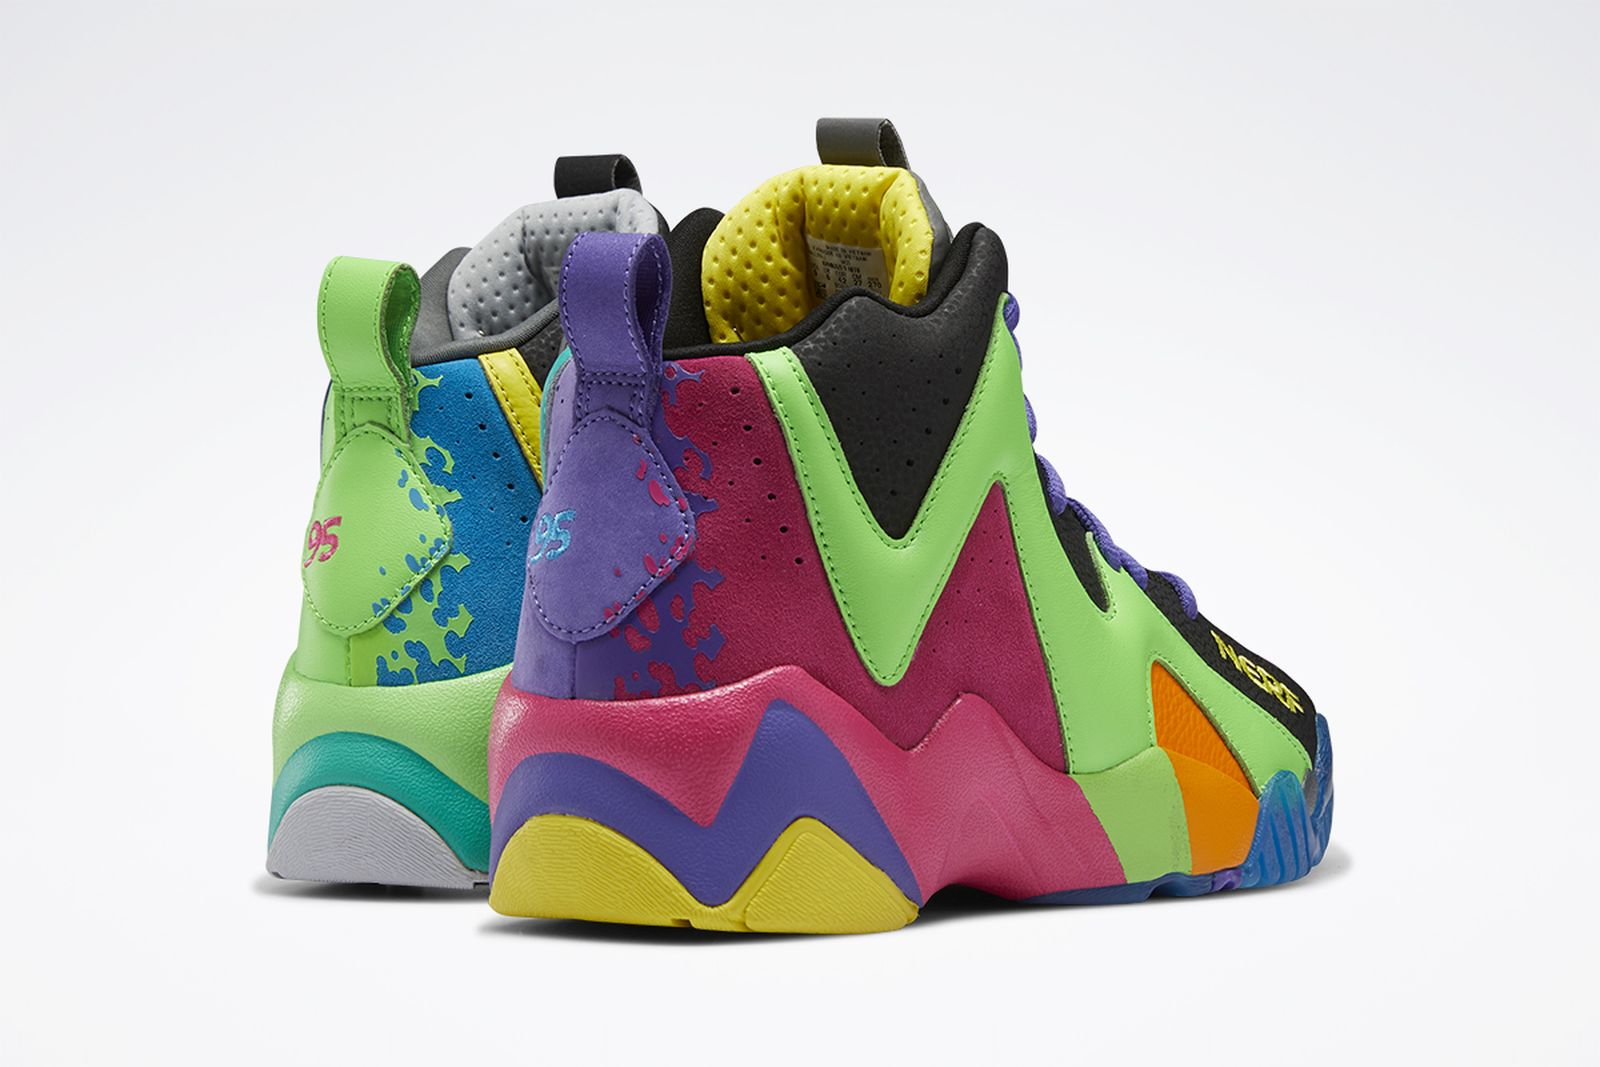 nerf-reebok-retro-basketball-collection-release-date-price-05